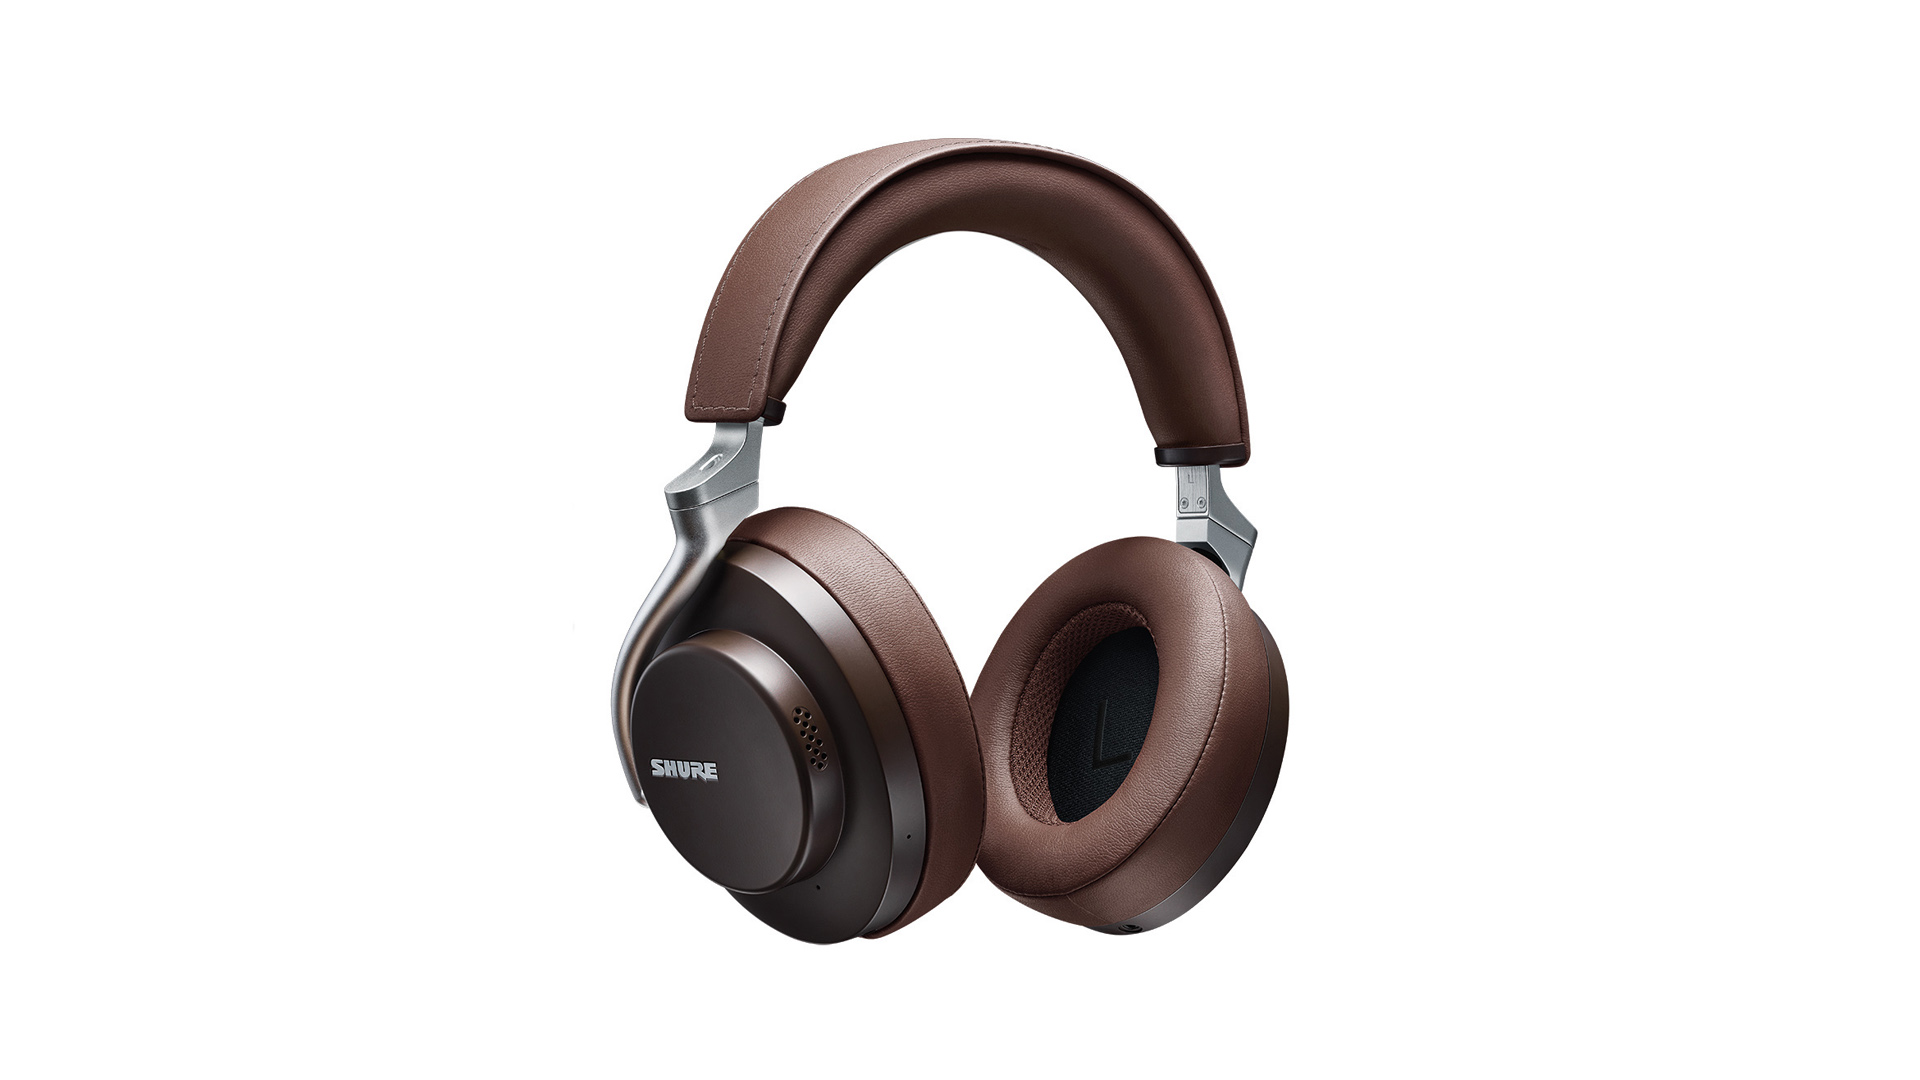 the shure aonic 50 noise cancelling headphones in brown